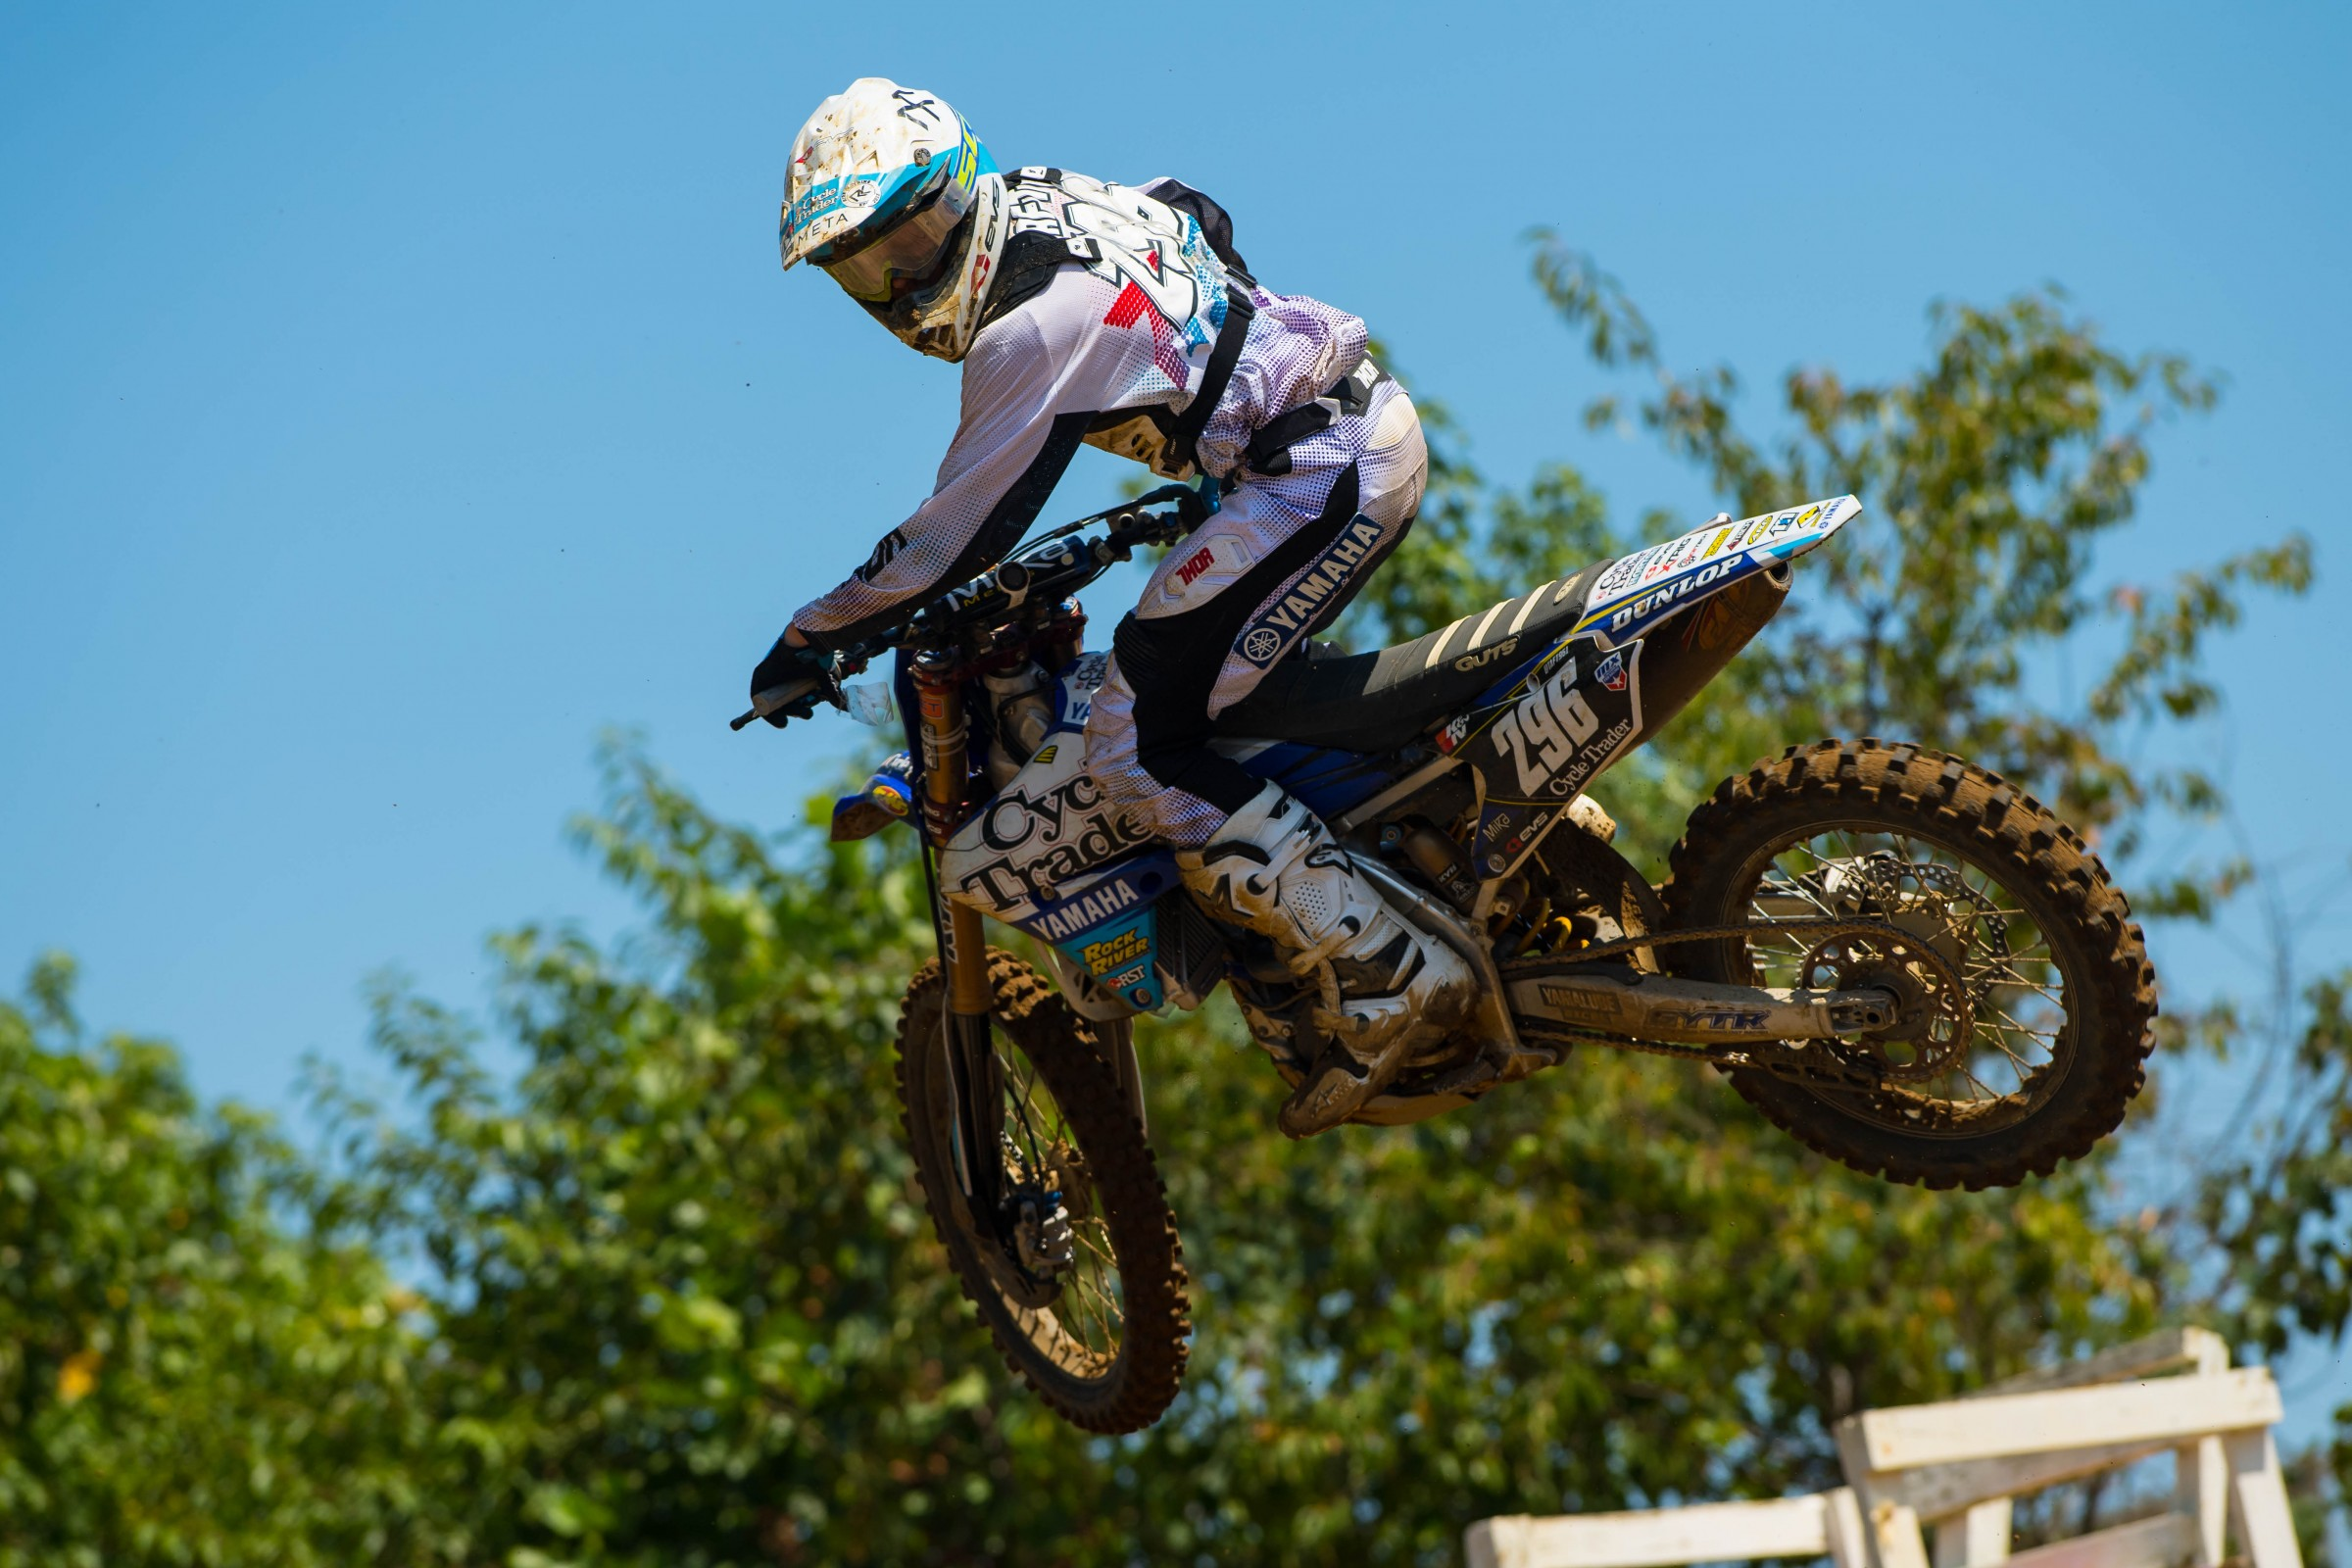 Taft went 18-13-12 at the last three rounds of Pro Motocross last year.